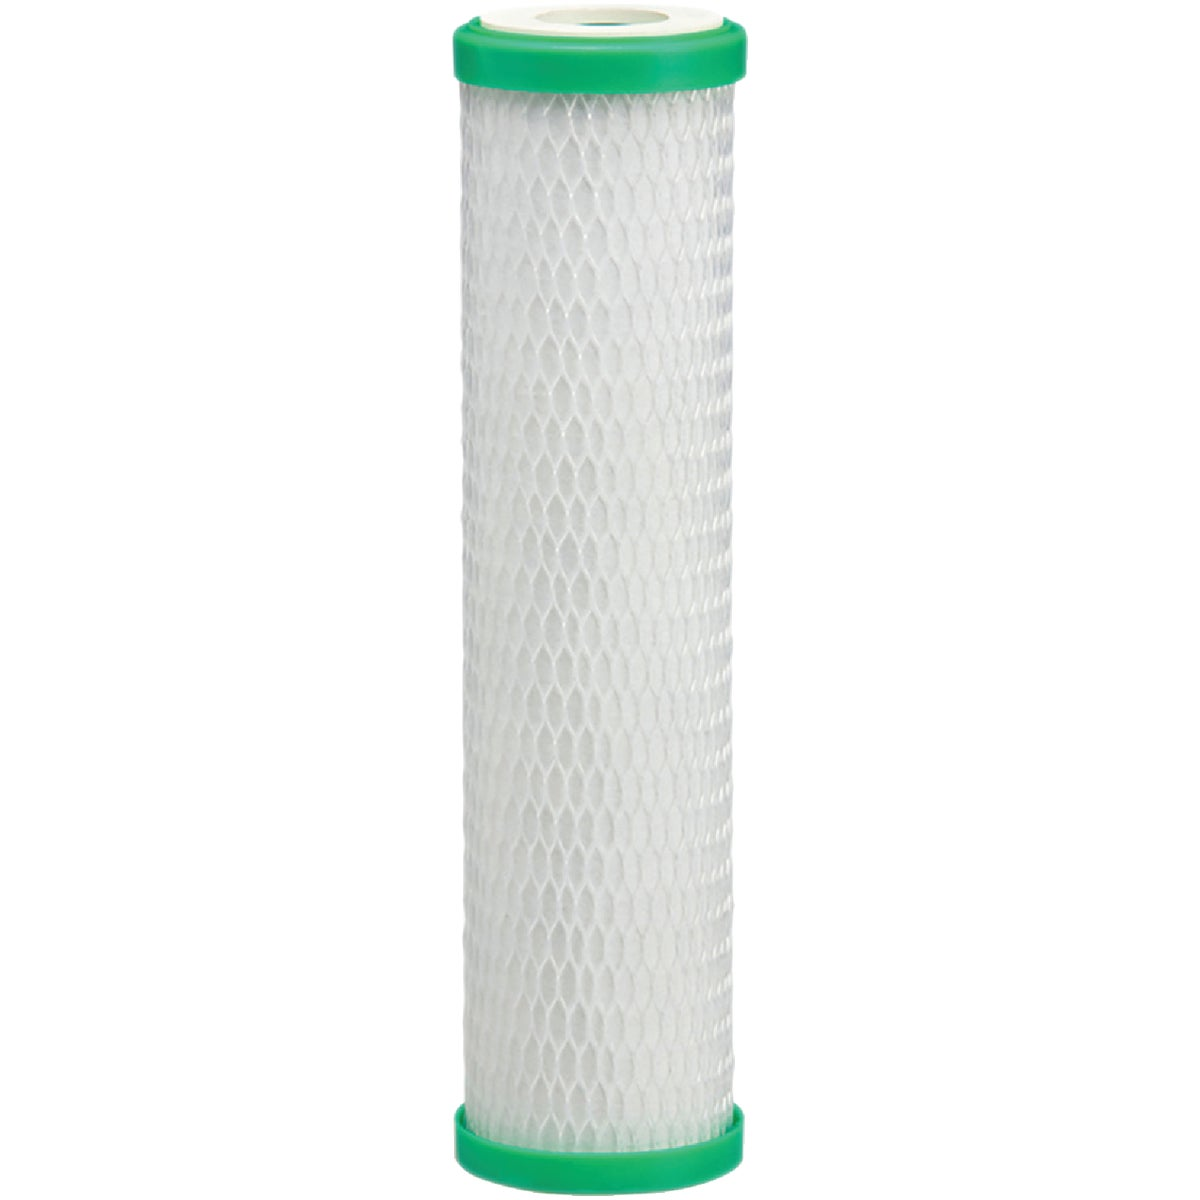 FILTER CARTRIDGE - D-40A-D by Culligan